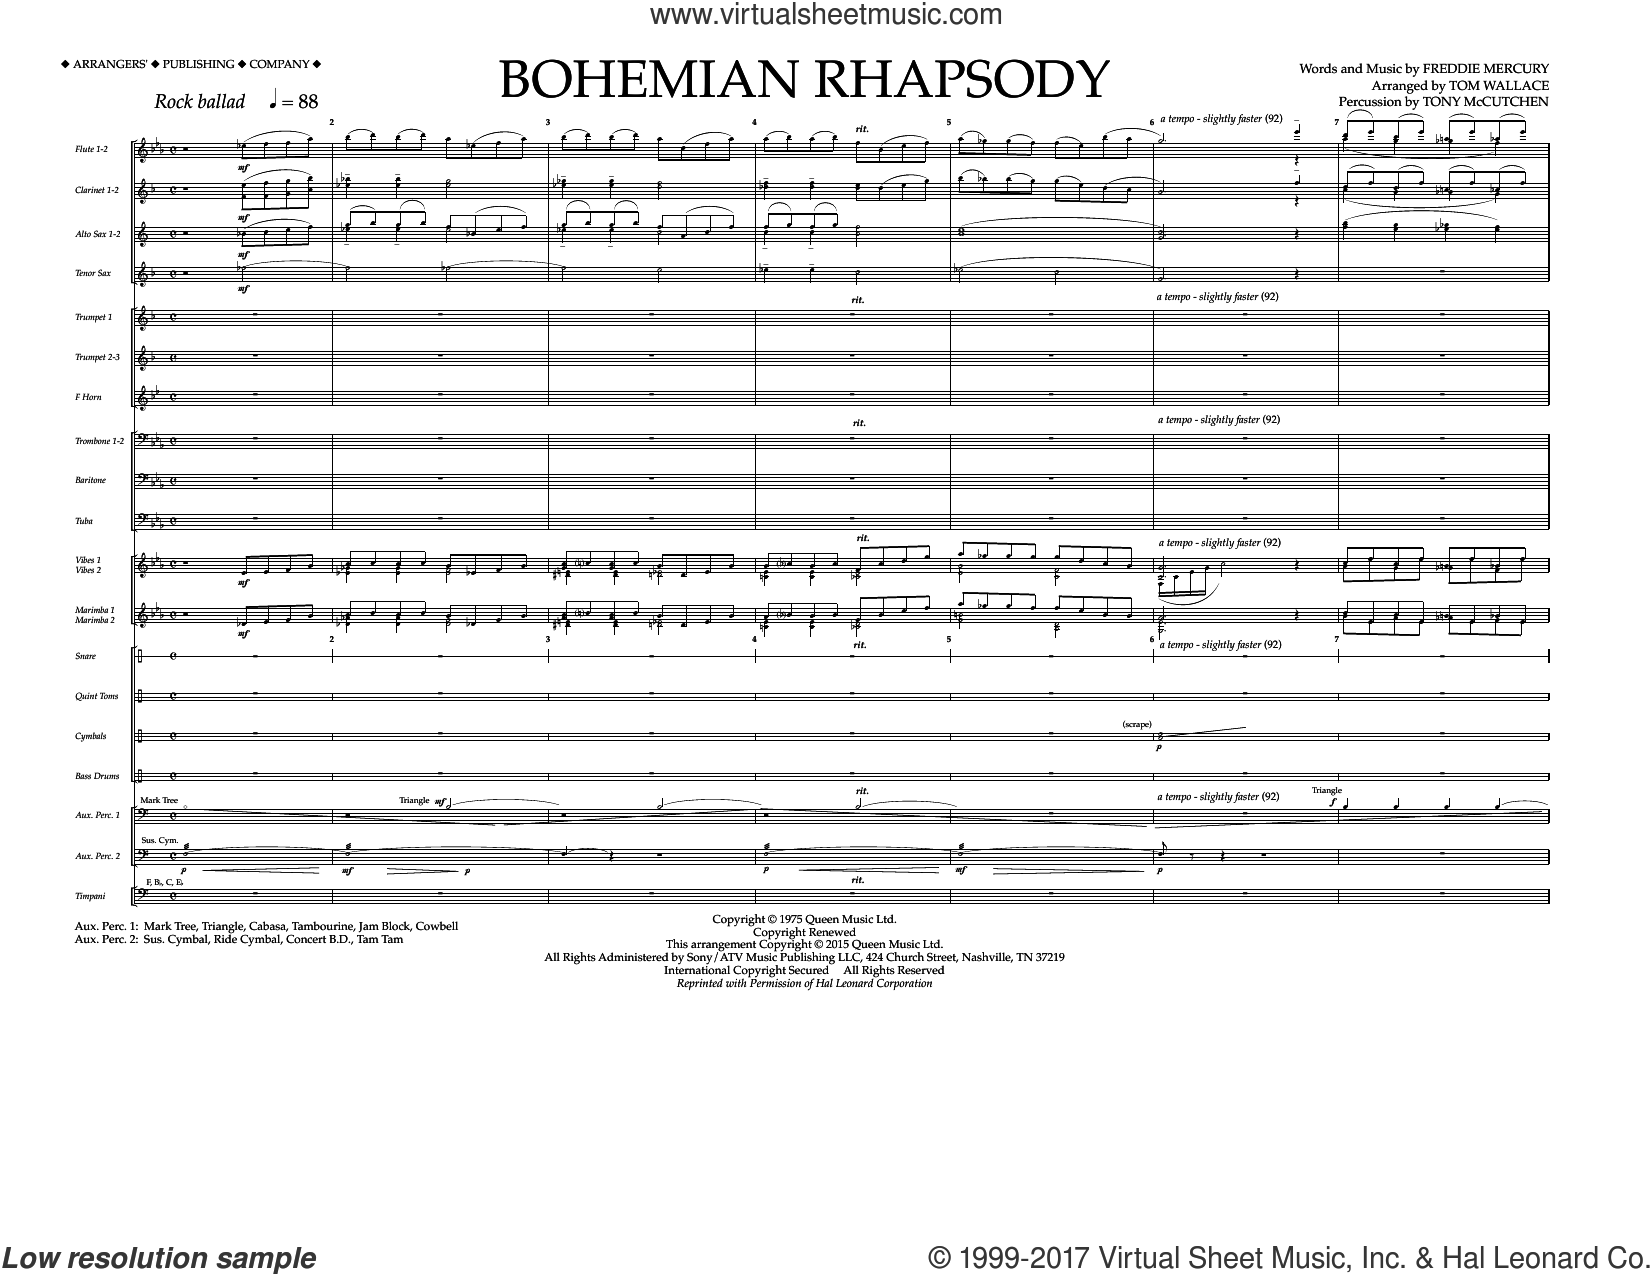 Queen - Bohemian Rhapsody sheet music (complete collection) for marching  band